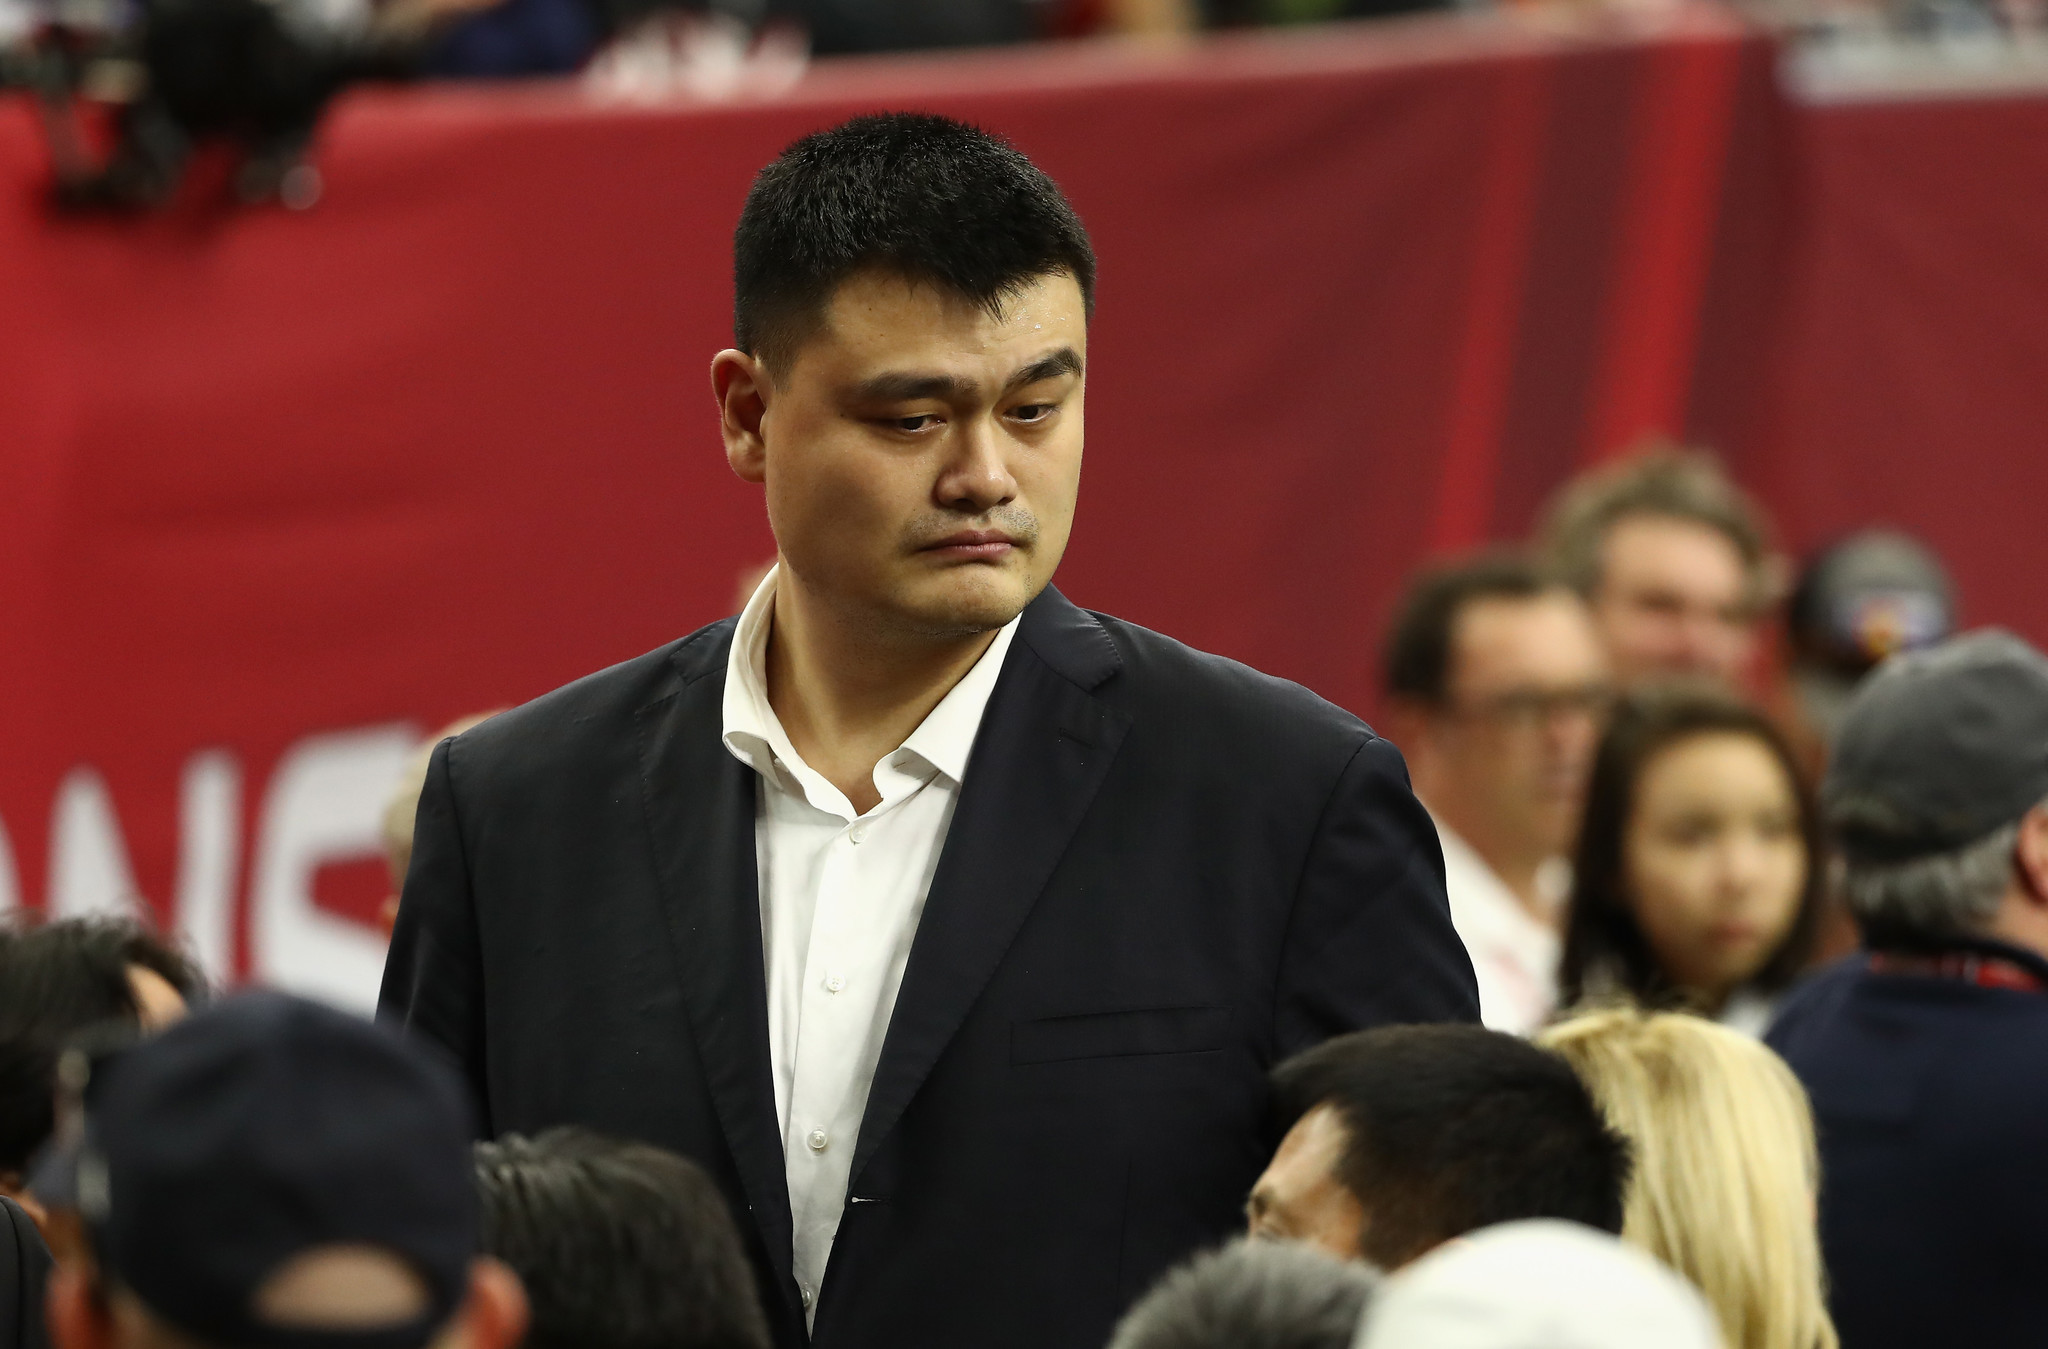 Ct Pick 3 >> Chinese Basketball Association elects Yao Ming as president - Chicago Tribune